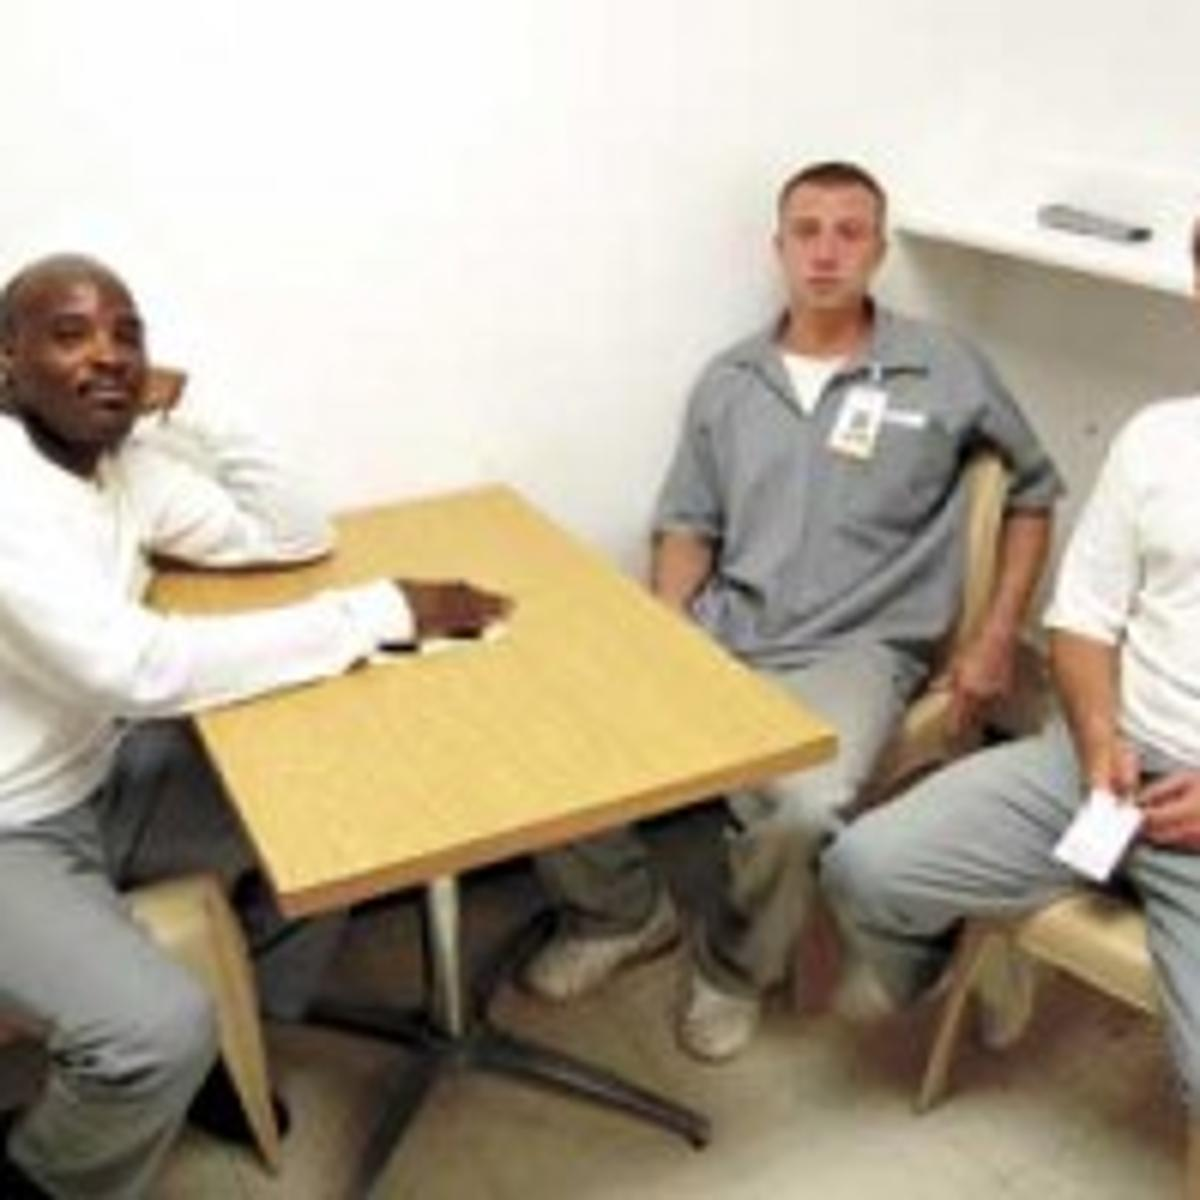 New program helps inmates return to society | Daily Journal